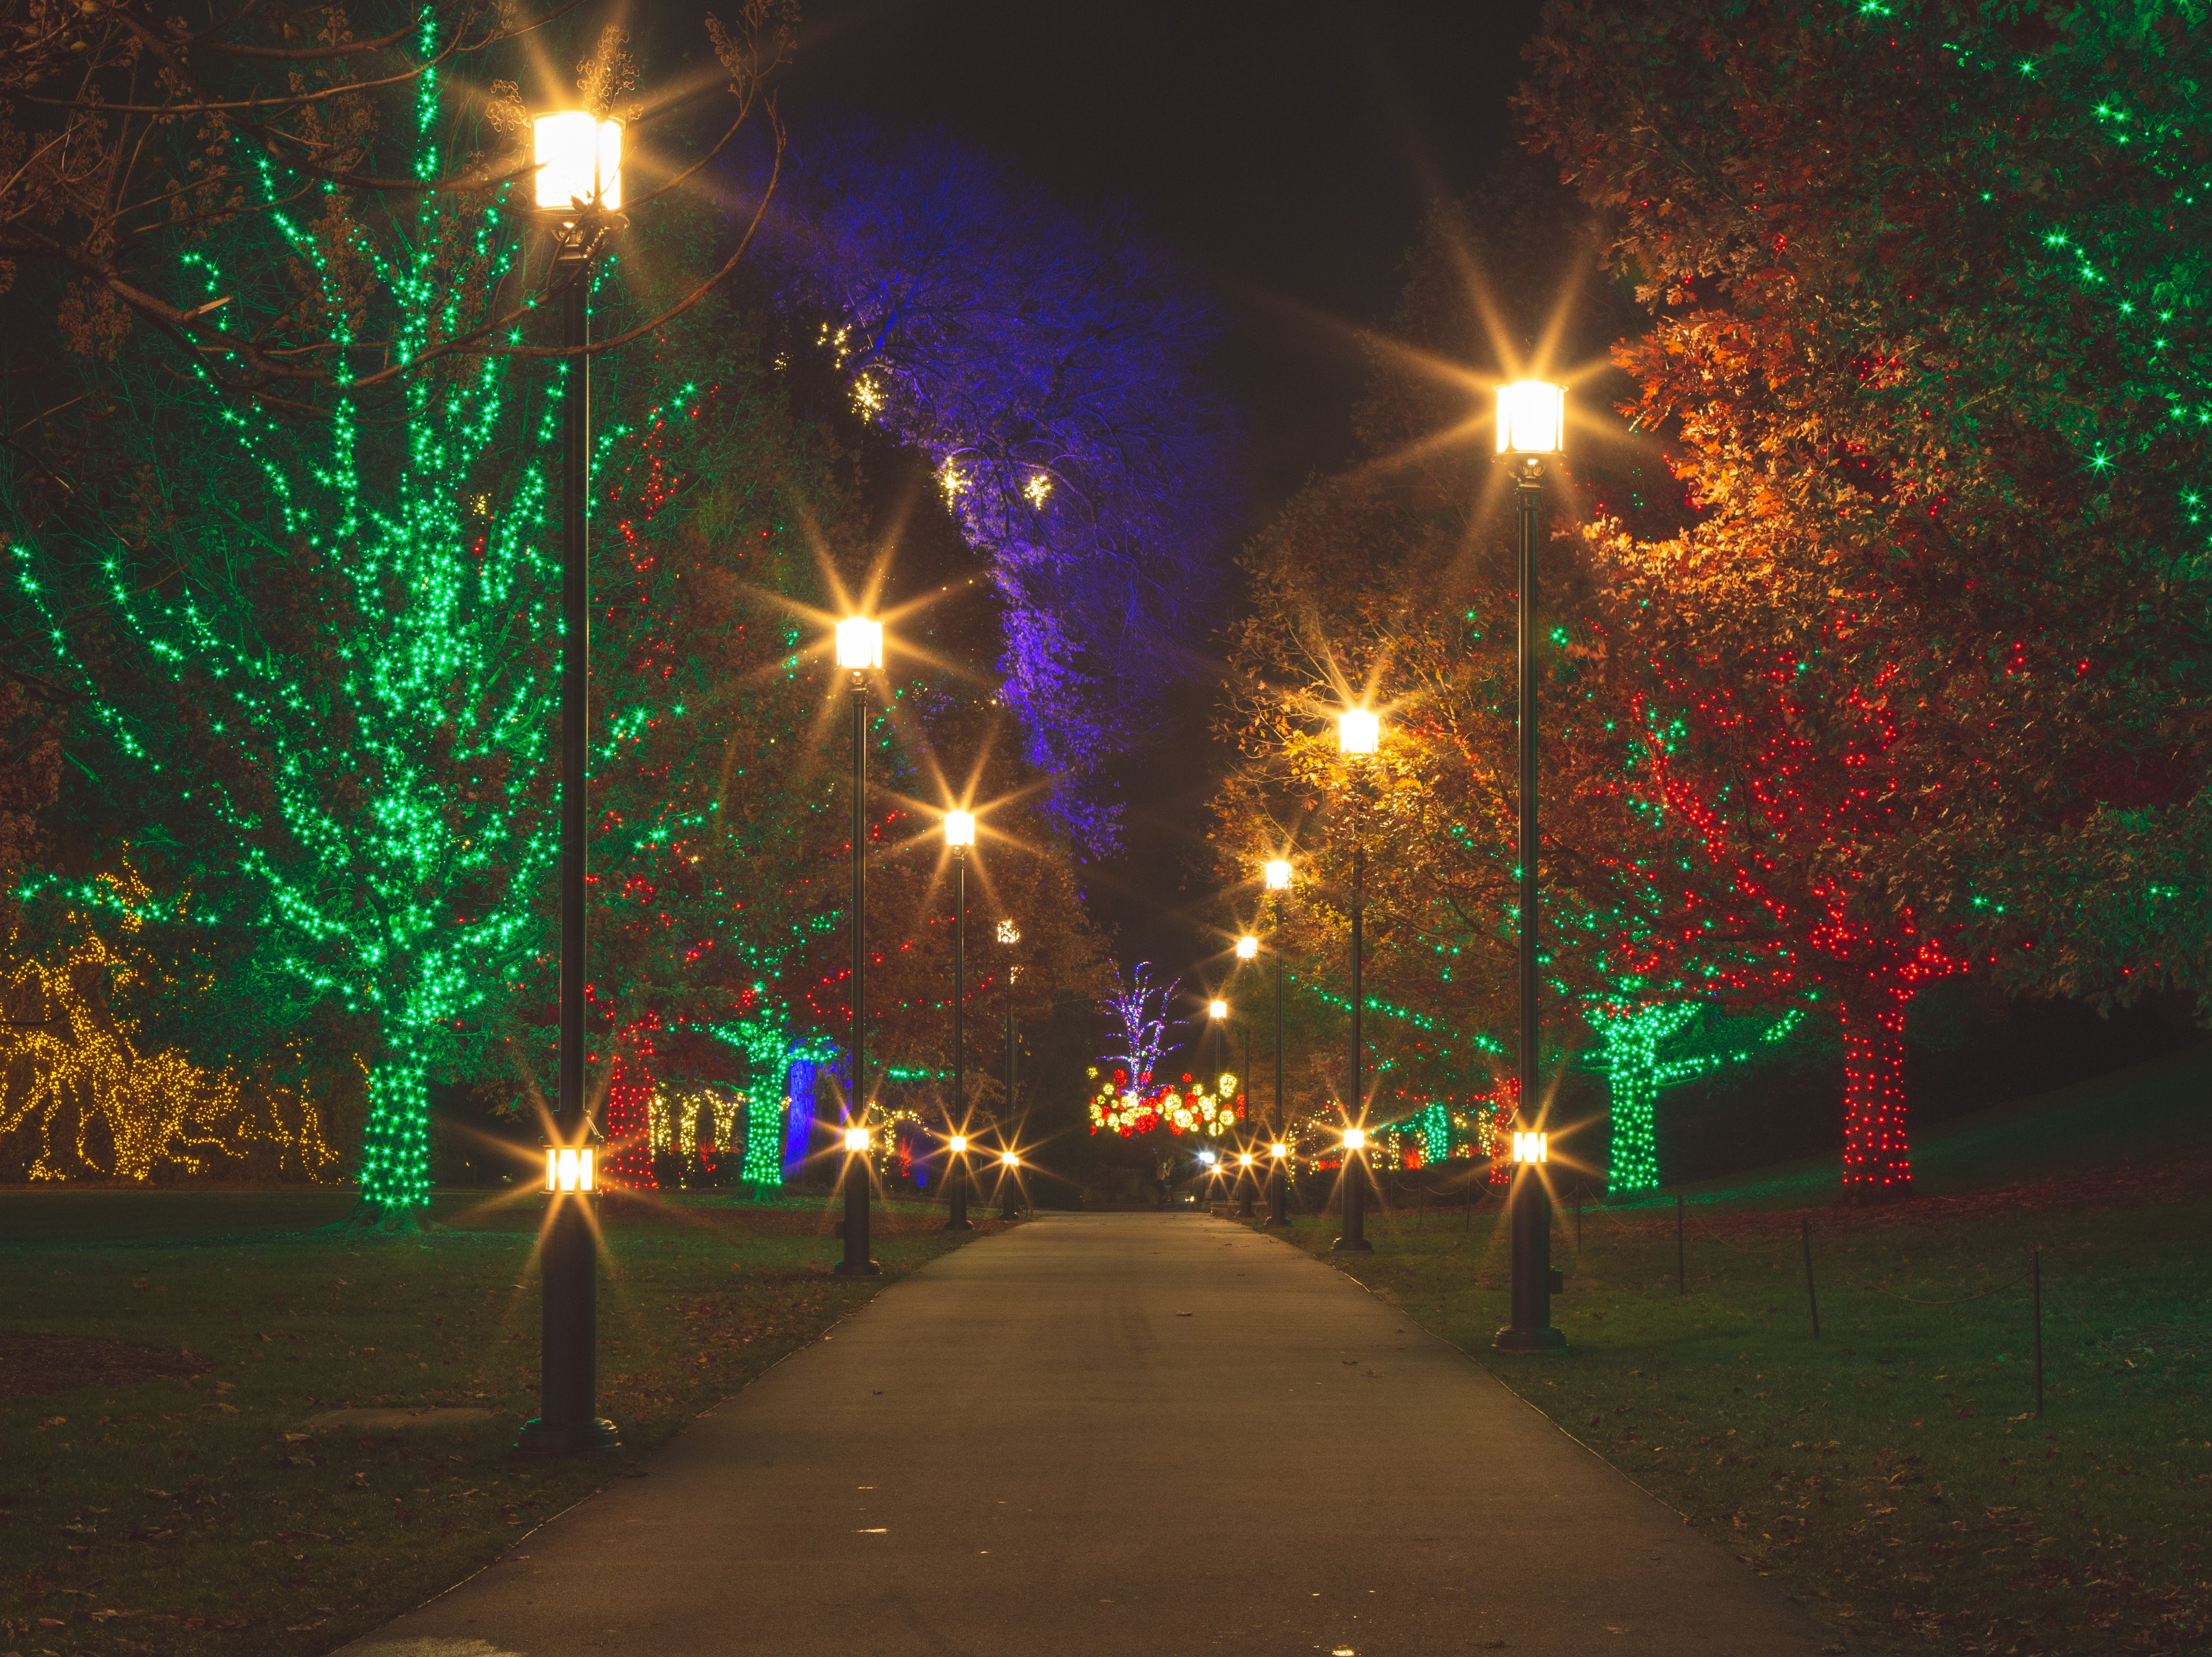 More than 500,000 lights on 150 trees add sparkle to the grounds during A Longwood Christmas in 2018.